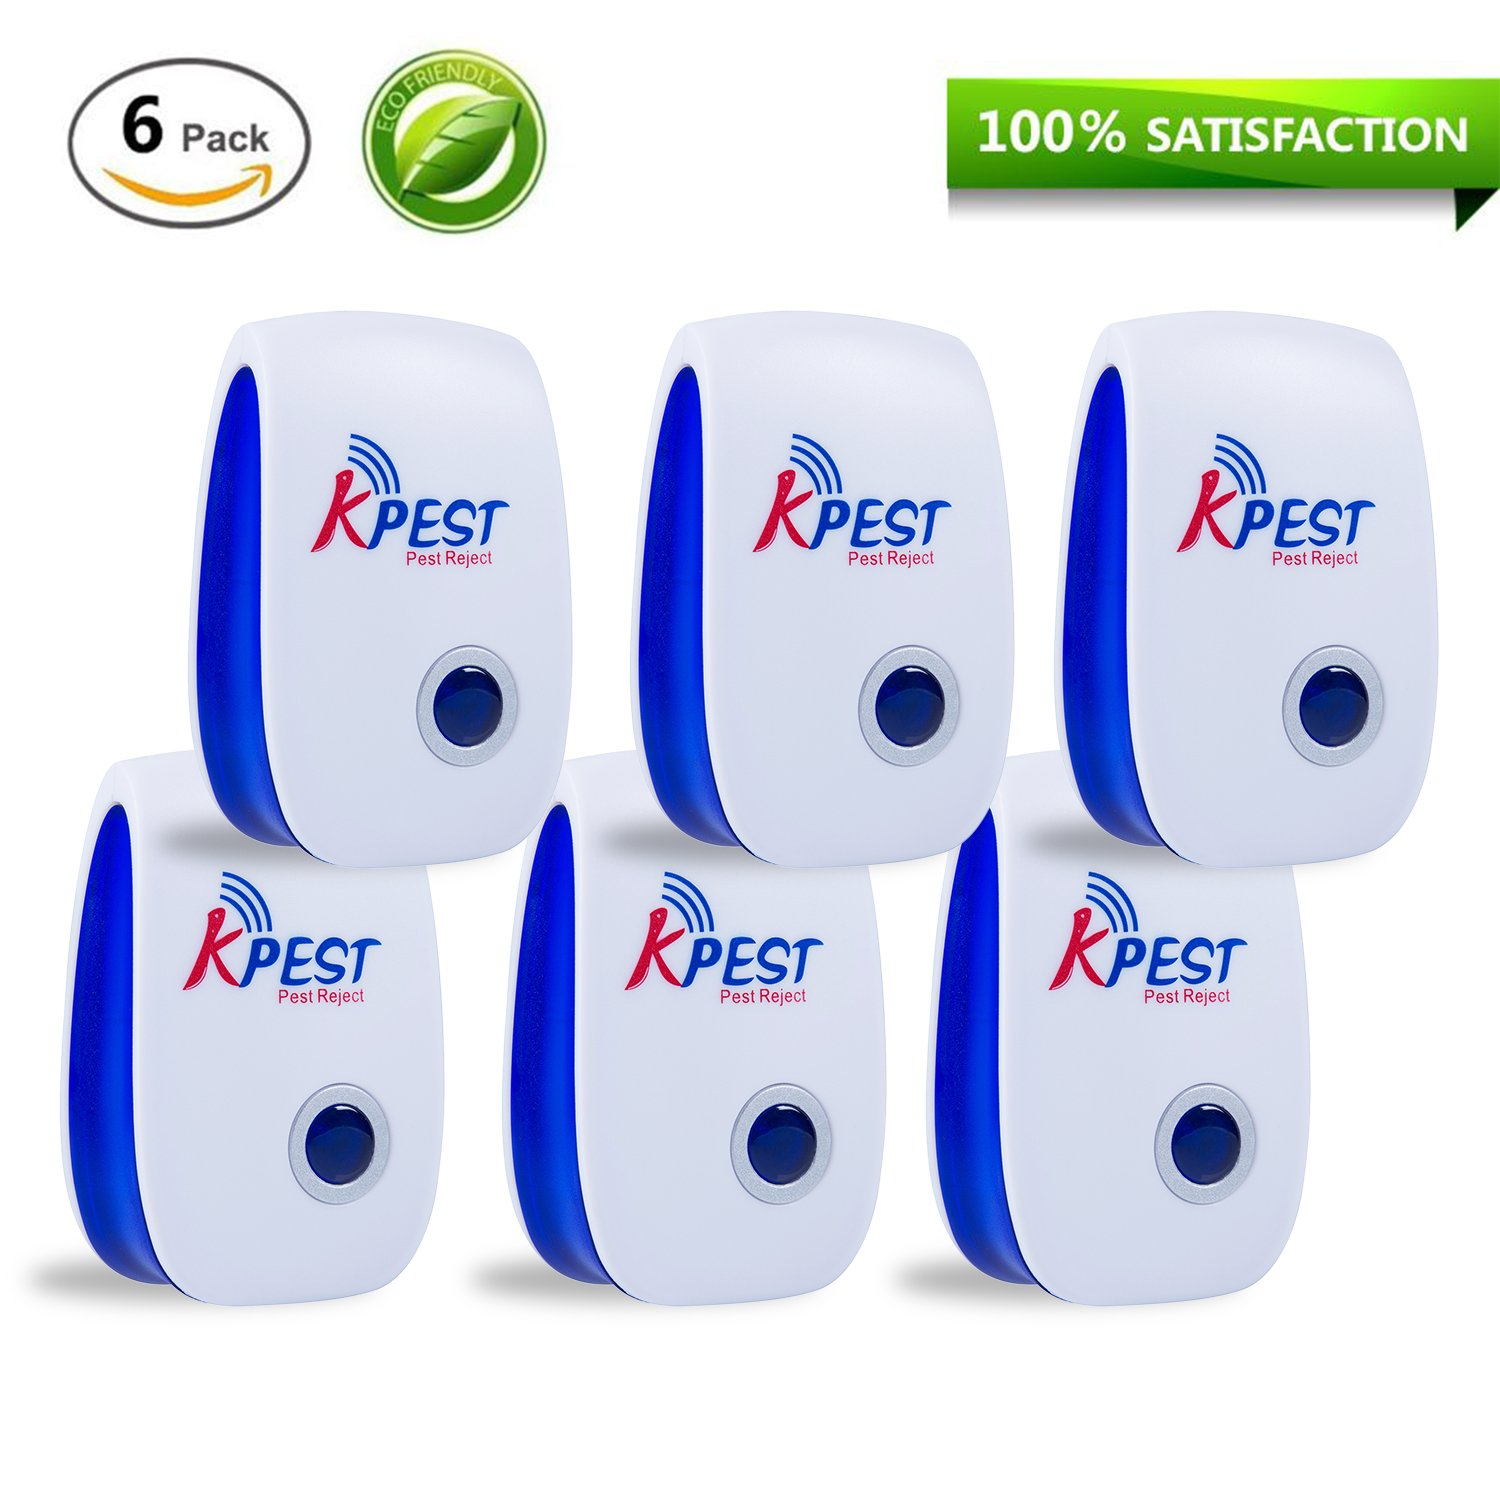 Kpest Pest Control Ultrasonic Repellent,Electronic Plug In Pest Repeller,Pack of 6 Repellent For Mice,Mosquitoes, Cockroaches, Ants, Rodents, Flies, Bugs, Spiders, Other Insects (Blue)